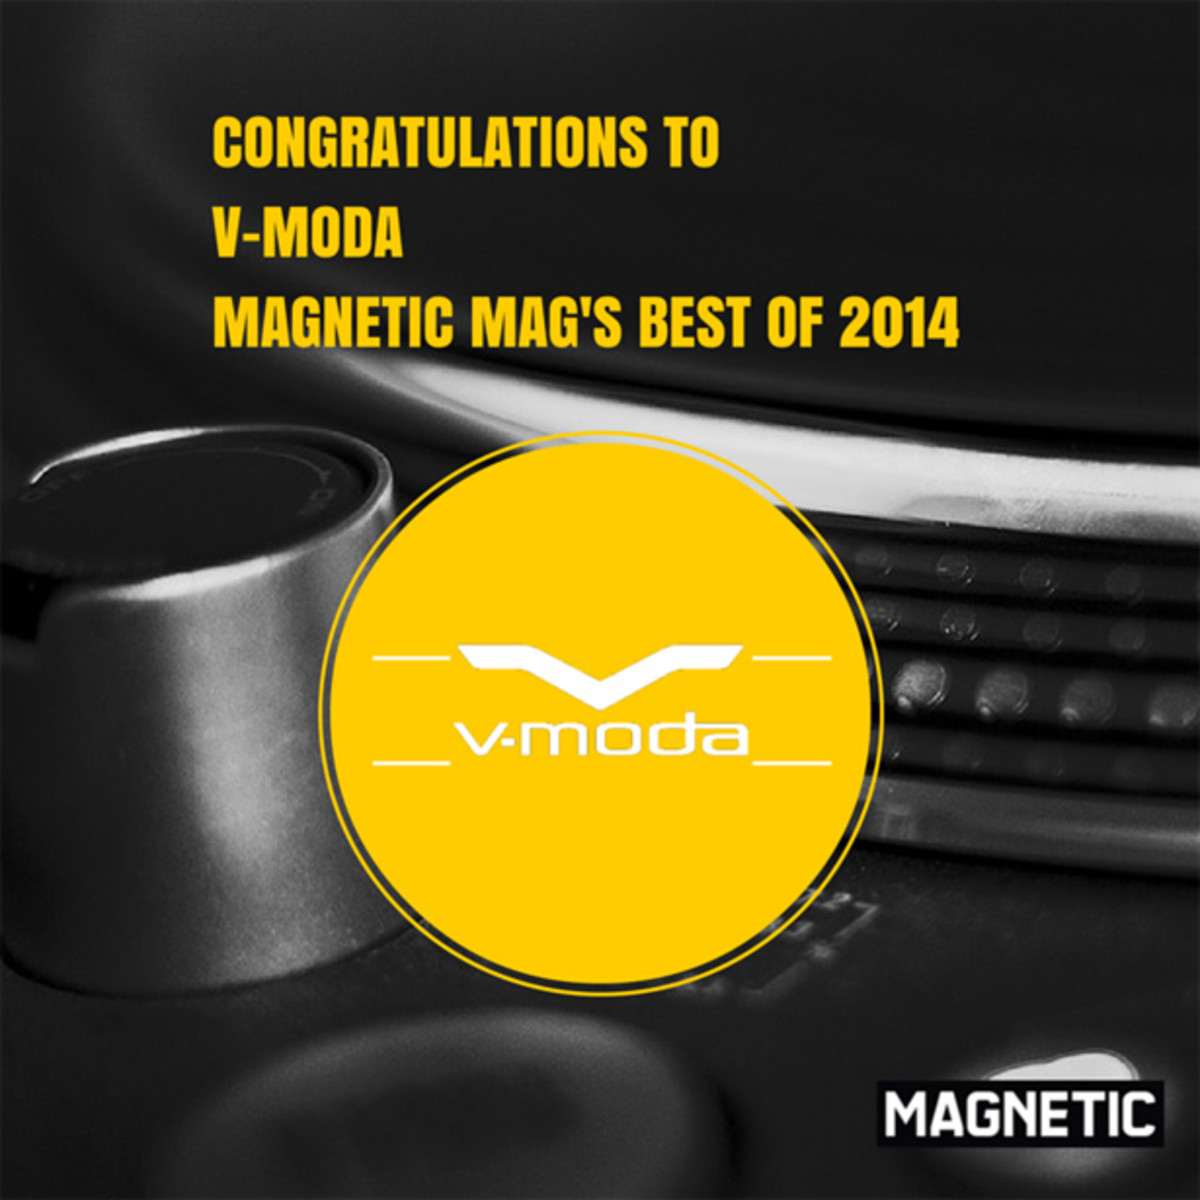 The Winner Of The Best DJ Headphones Category for Magnetic Mag's Best Of 2014